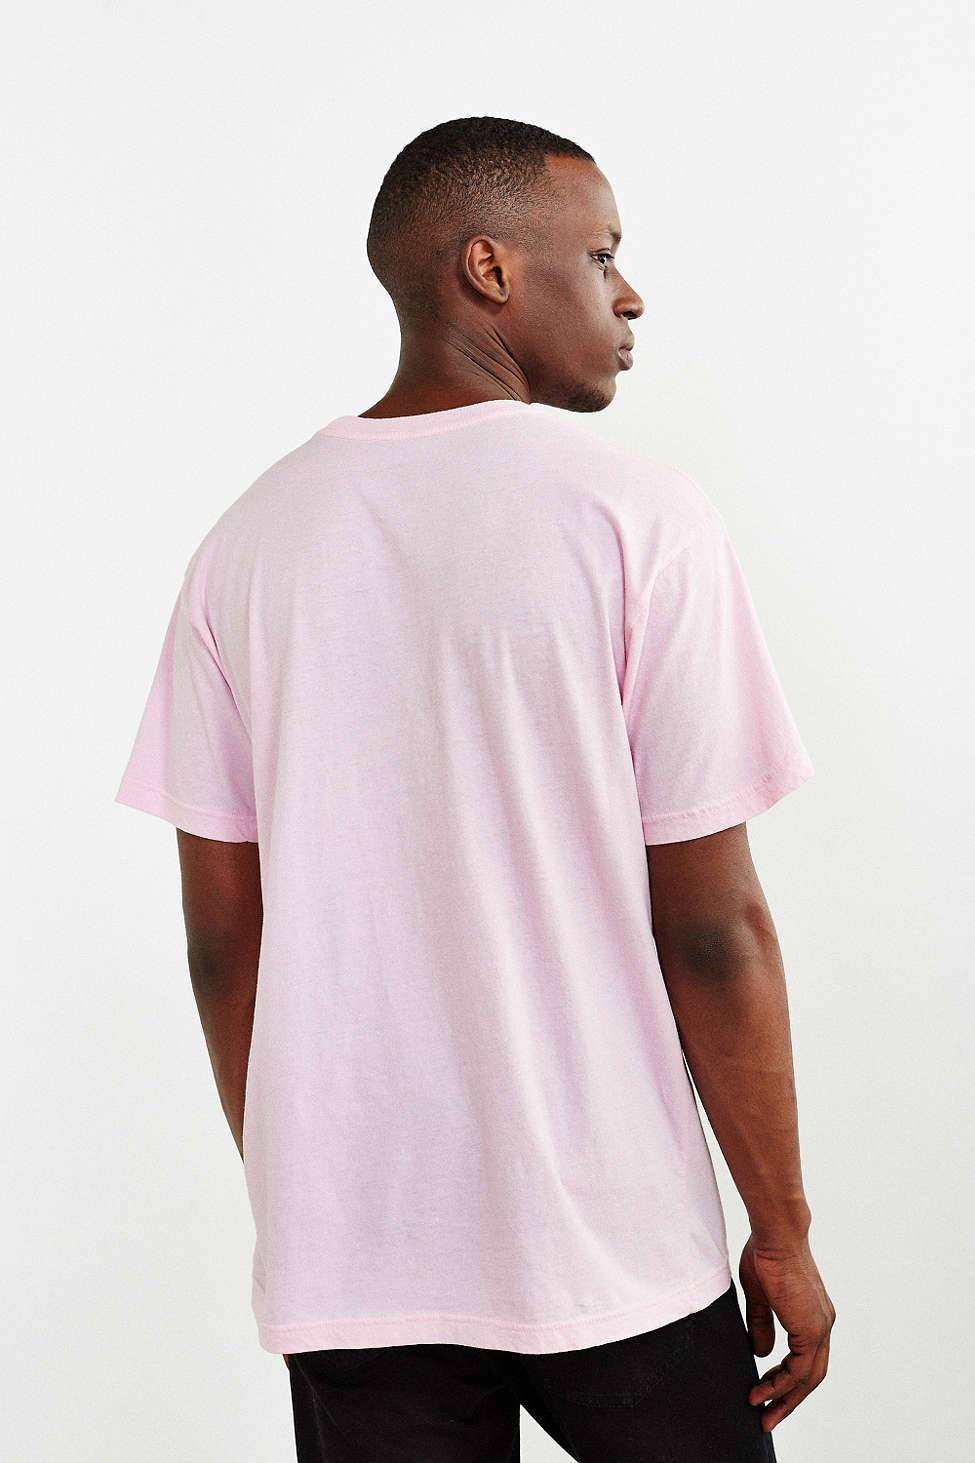 ... Urban Outfitters Embroidered Knife Tee Size US L / EU 52-54 / 3 ...